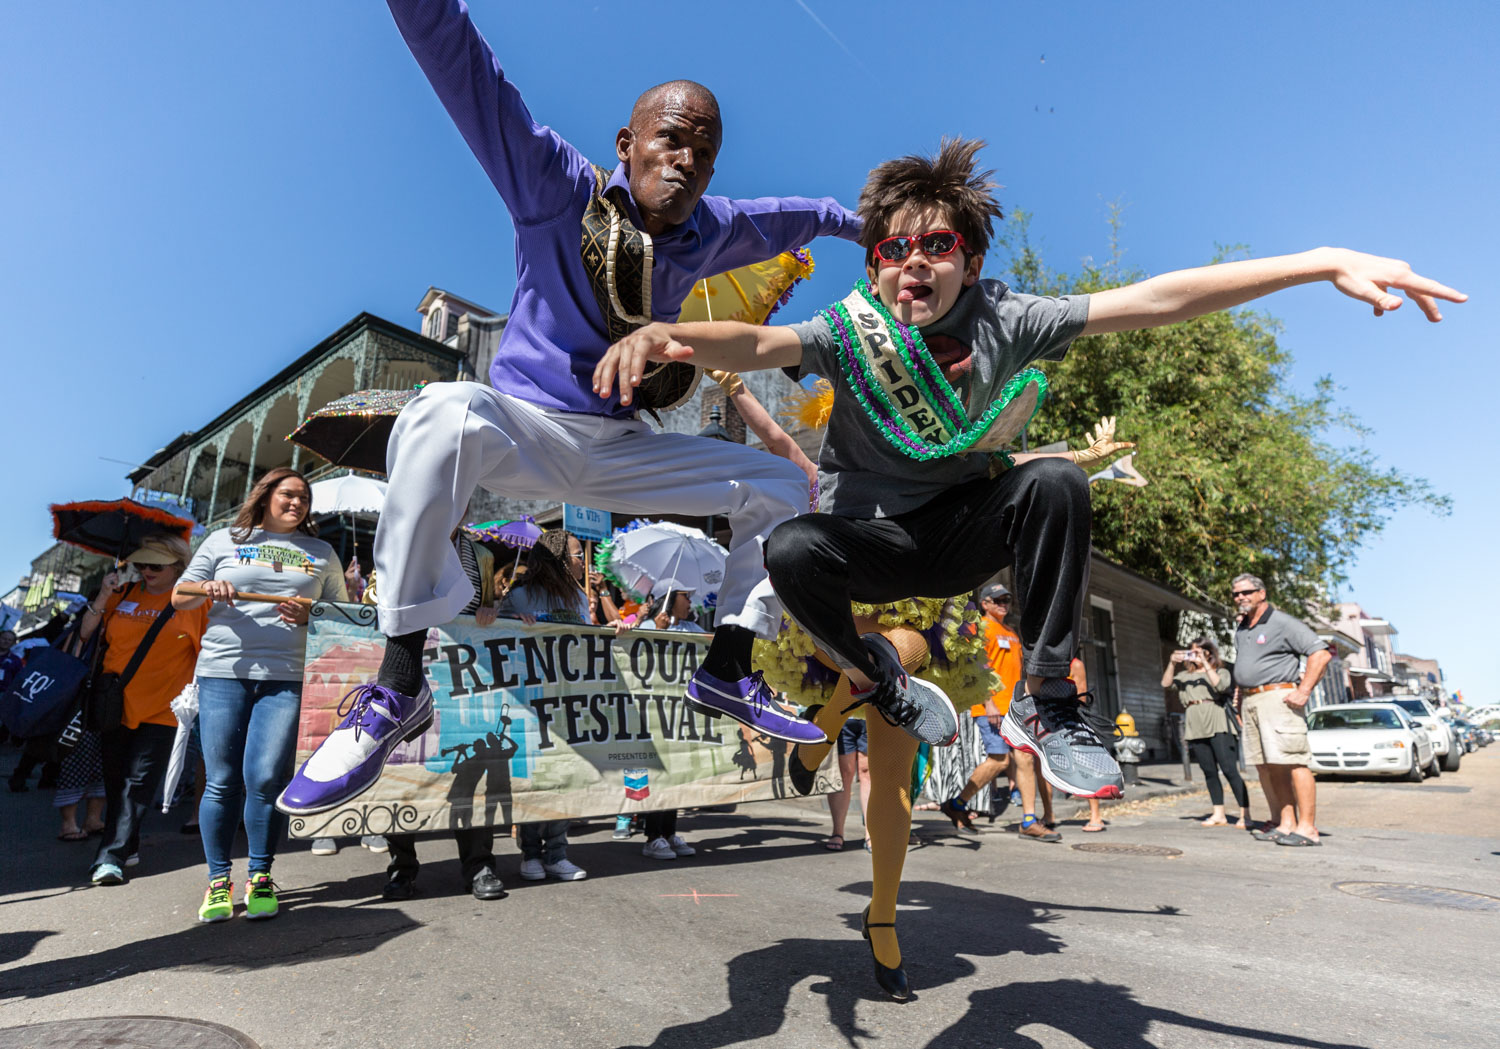 Dancing Man 504 and Spidey 504 lead the 2nd Line Parade on opening day of French Quarter Fest 2017